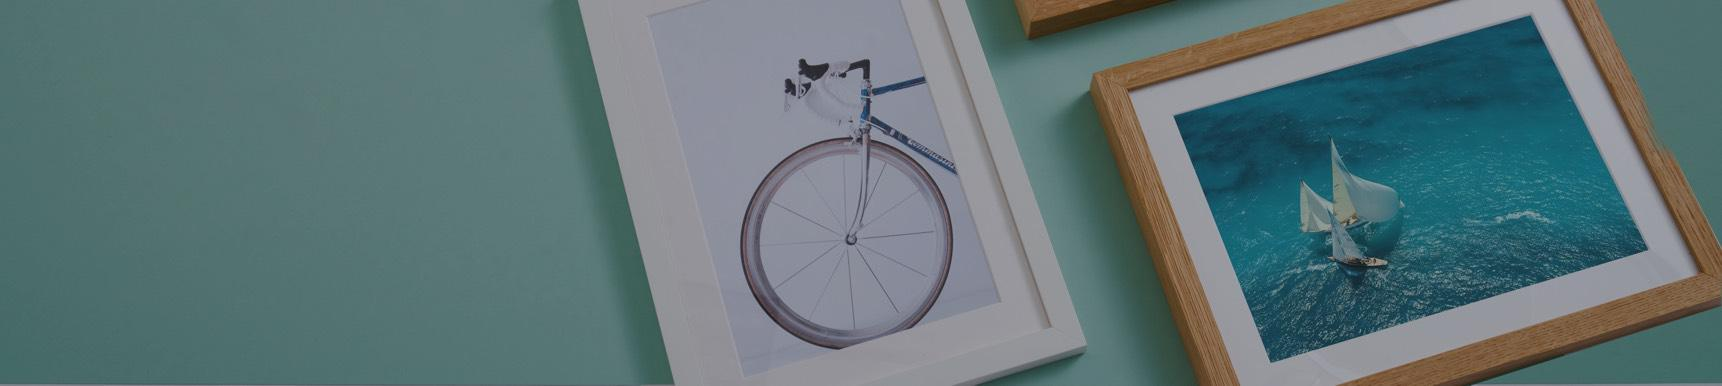 Framed photographs with bike and sailing boat motifs